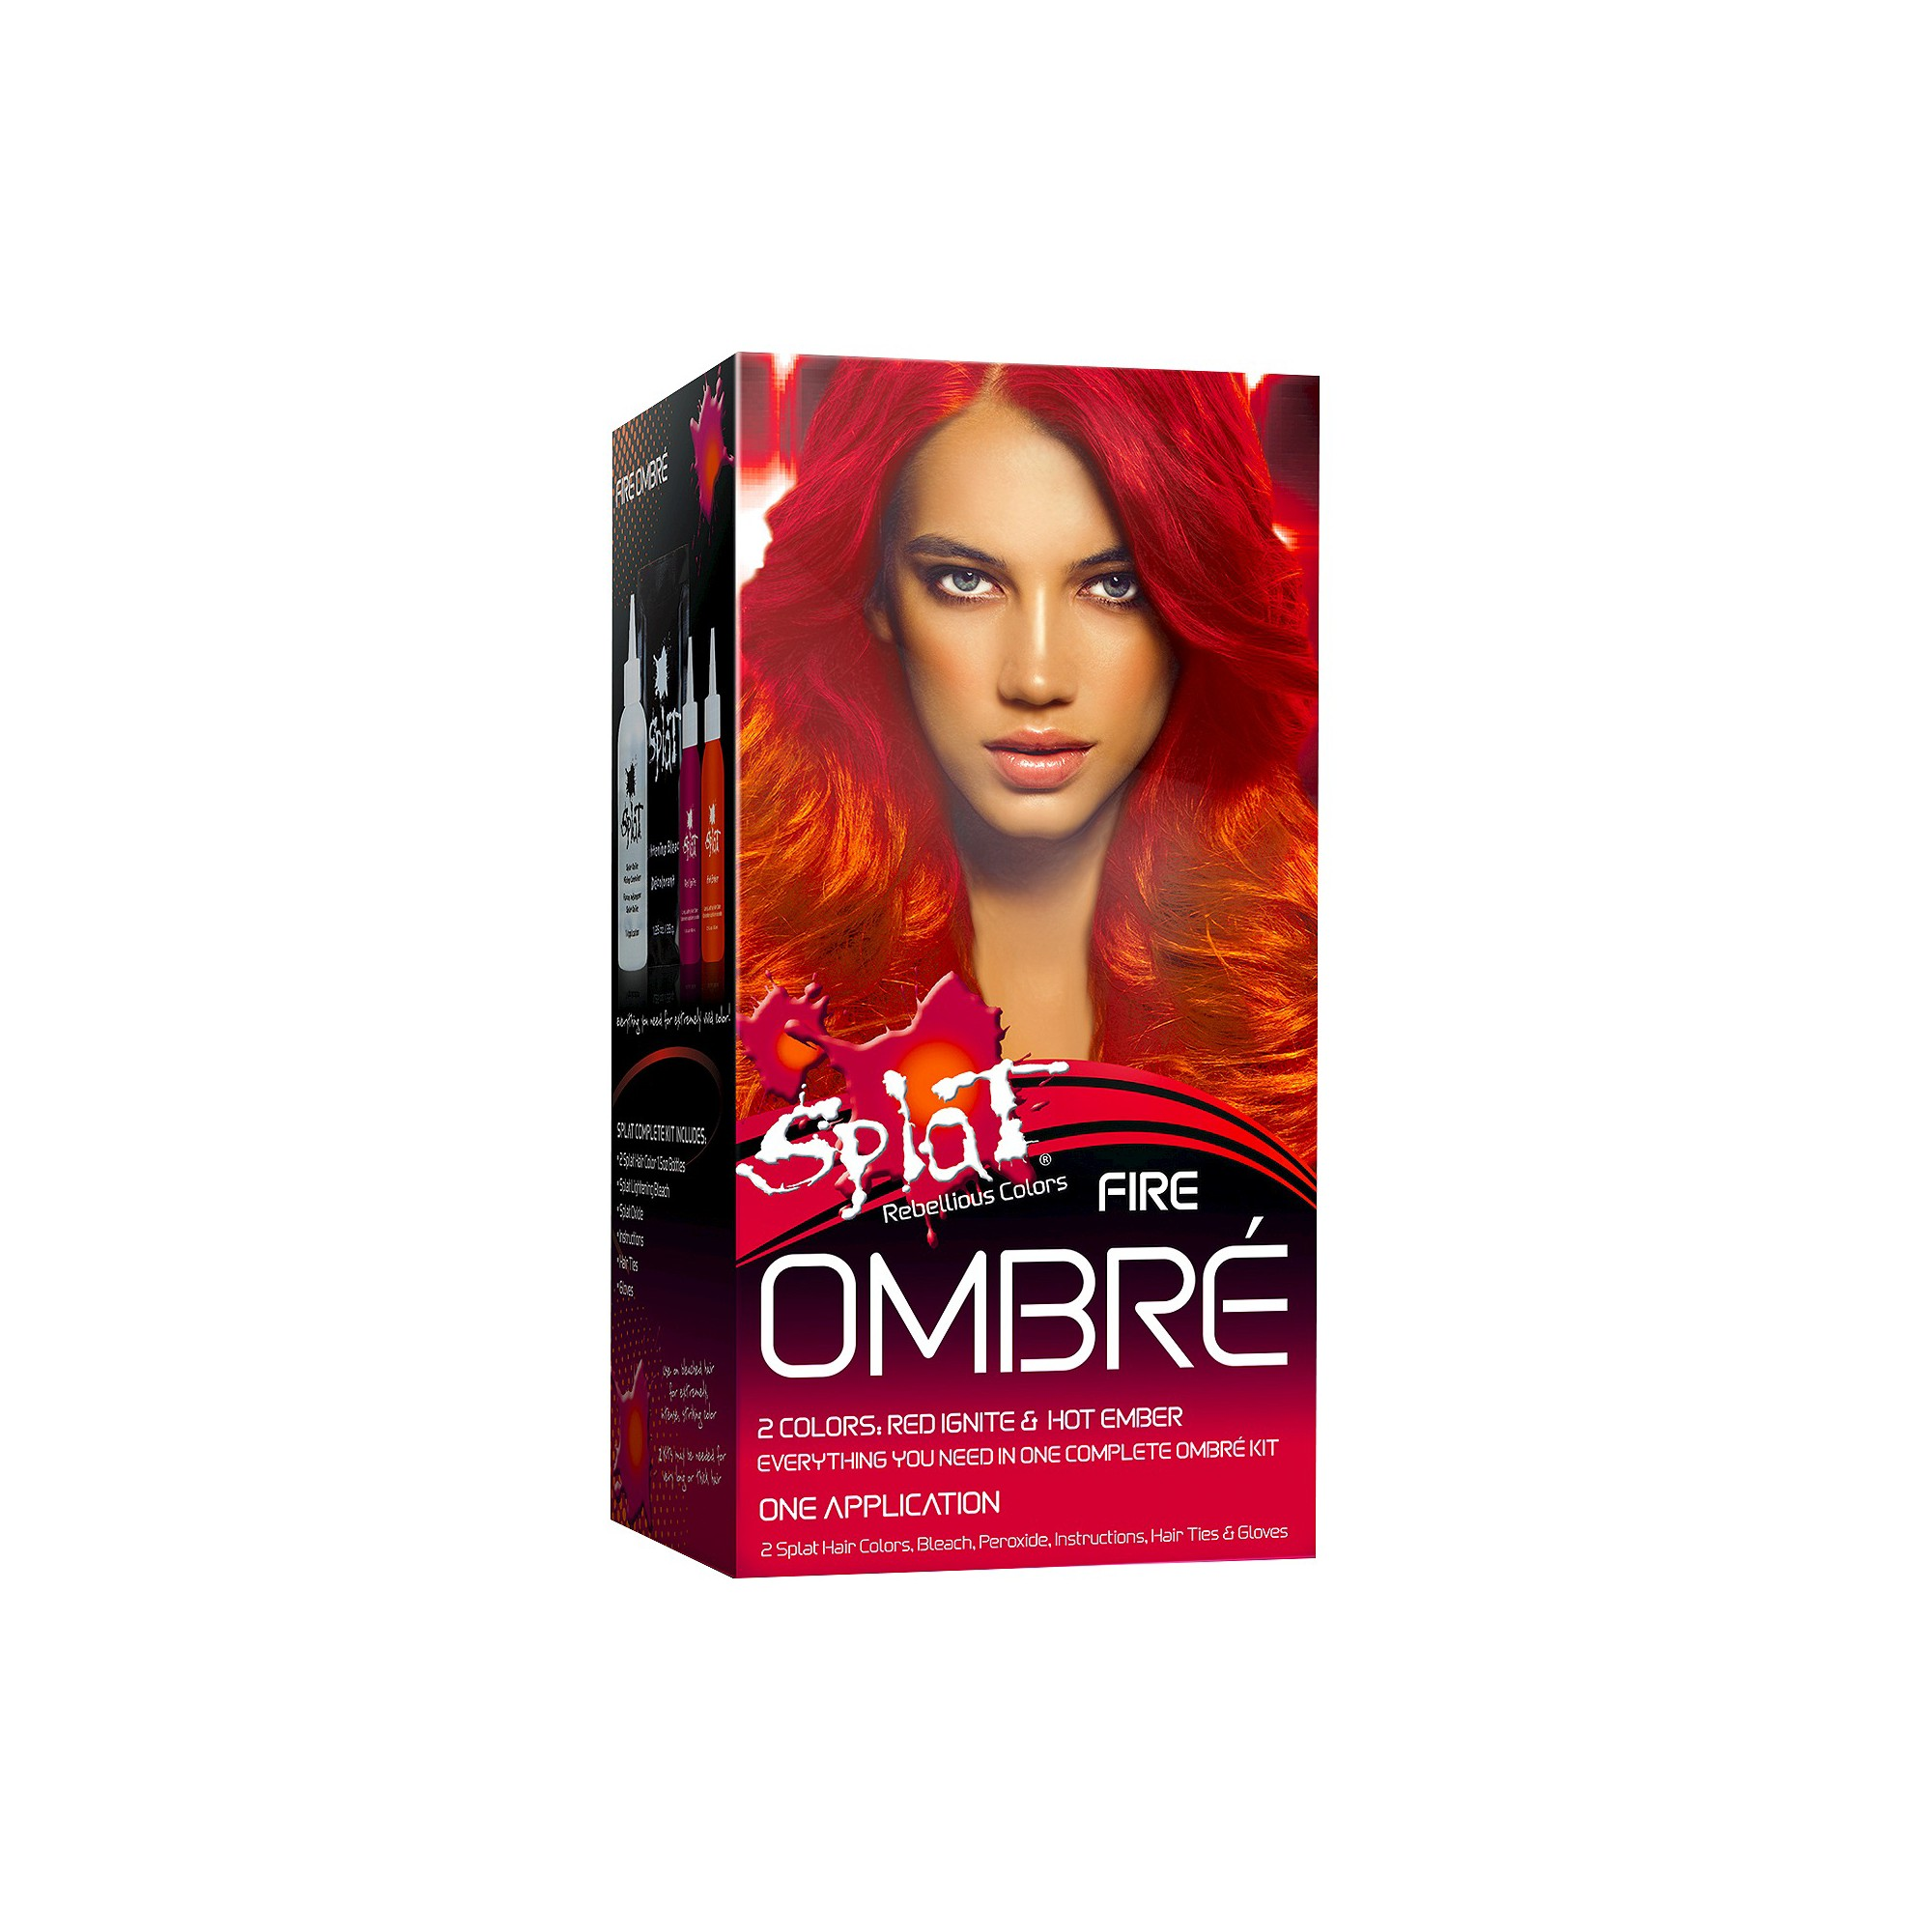 Splat Ombre Fire Hair Bleach And Color Kit 5 2 Fl Oz In 2020 Splat Hair Dye Bleached Hair Fire Hair